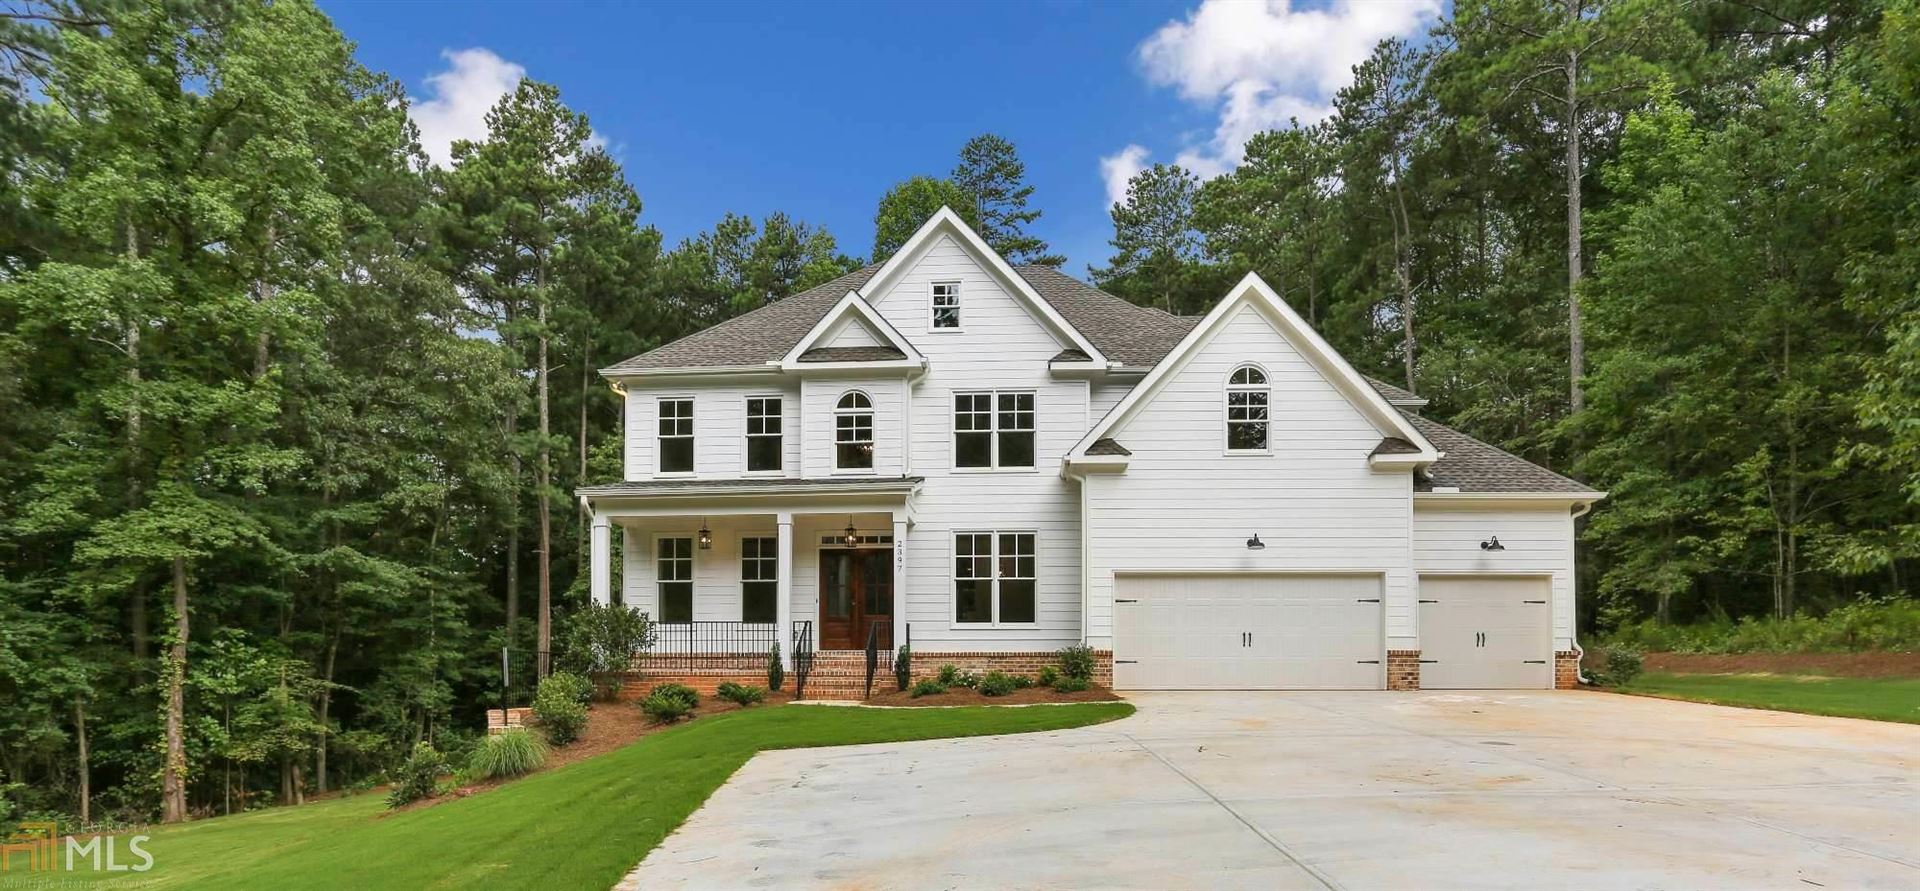 1506 Camp Point Ct, Roswell, GA 30075 - MLS#: 8834203